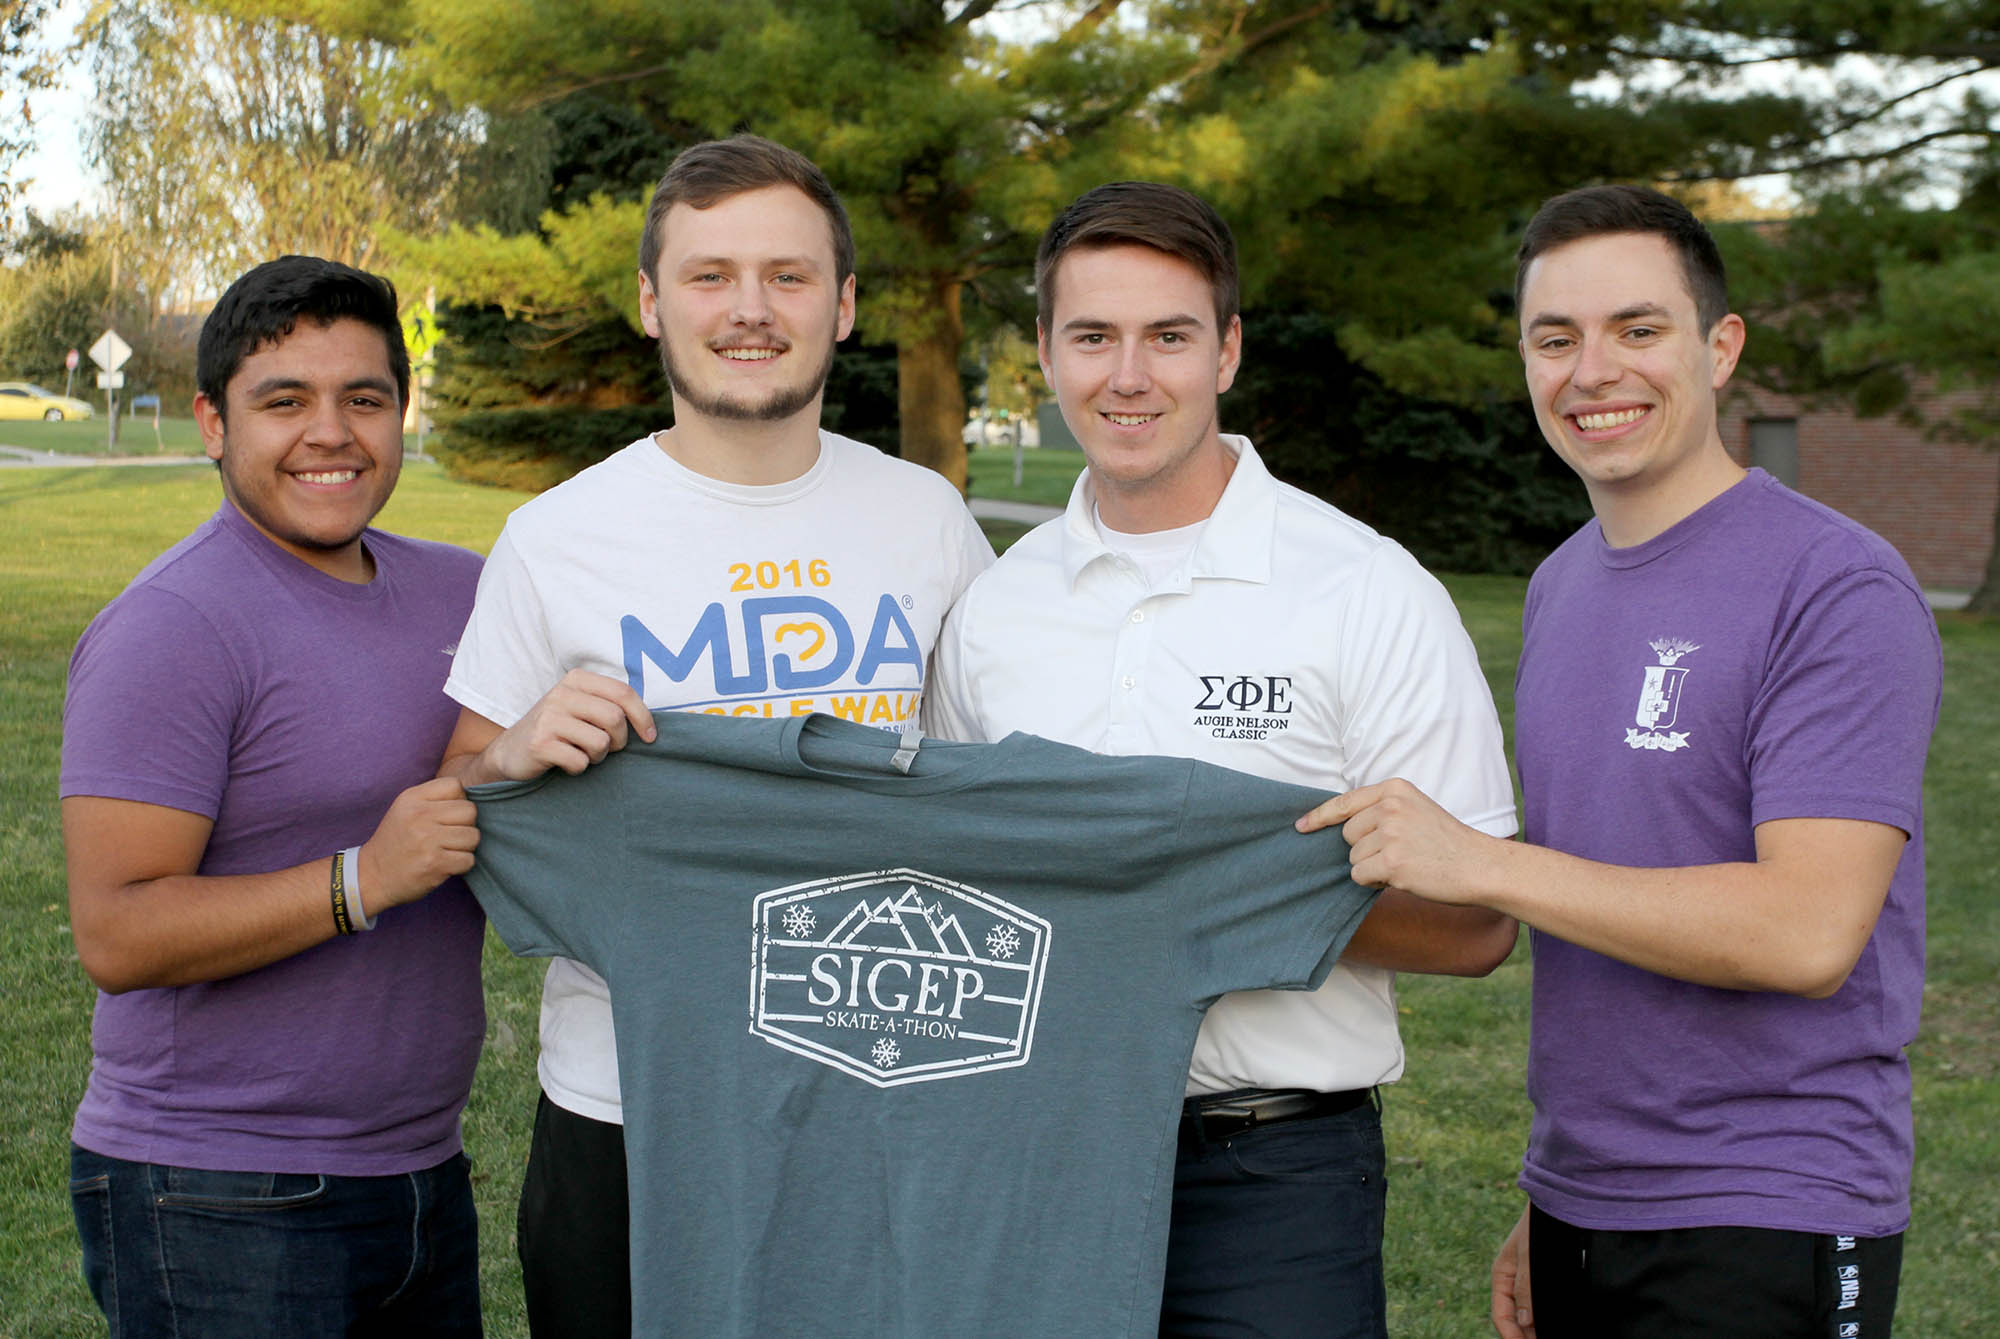 UNK's Sigma Phi Epsilon fraternity is hosting an MDA Skate and Walk event Sunday at the Viaero Center to raise money for the Muscular Dystrophy Association and its Nebraska summer camp. Pictured, from left, are fraternity members Agustin Ruvalcaba, Jared Hunke, Corey Johnson and Austin Jacobsen. (Photo by Tyler Ellyson, UNK Communications)